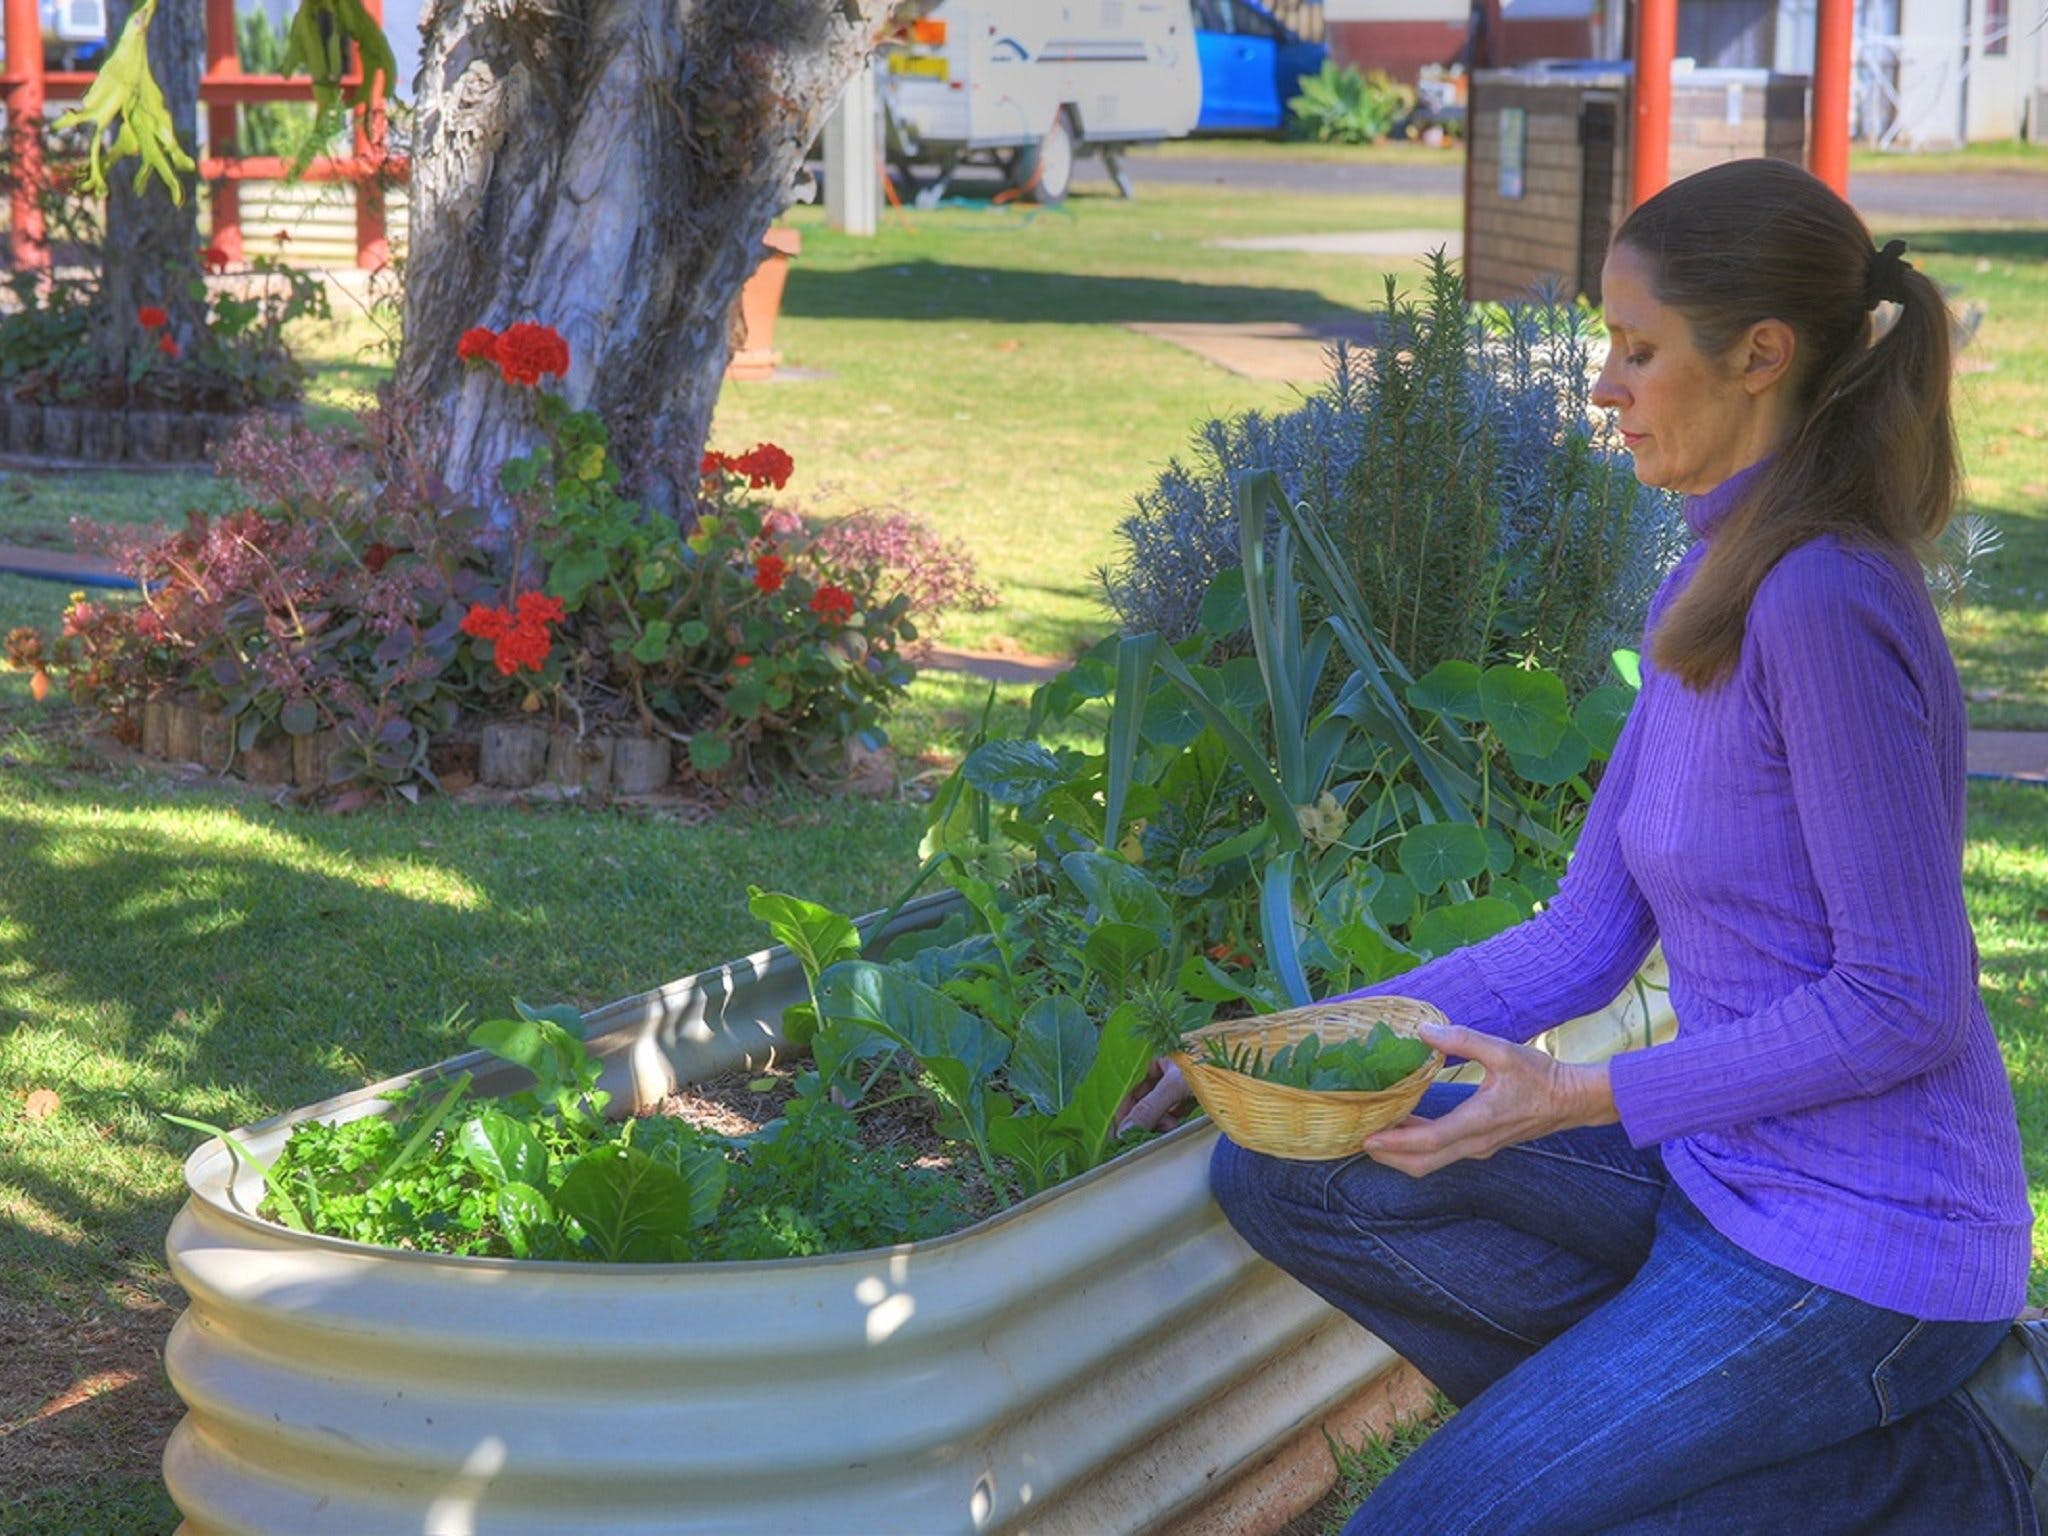 Lady picking fresh herbs from the free herb gardens at BIG4 Toowoomba Garden City Holiday Park